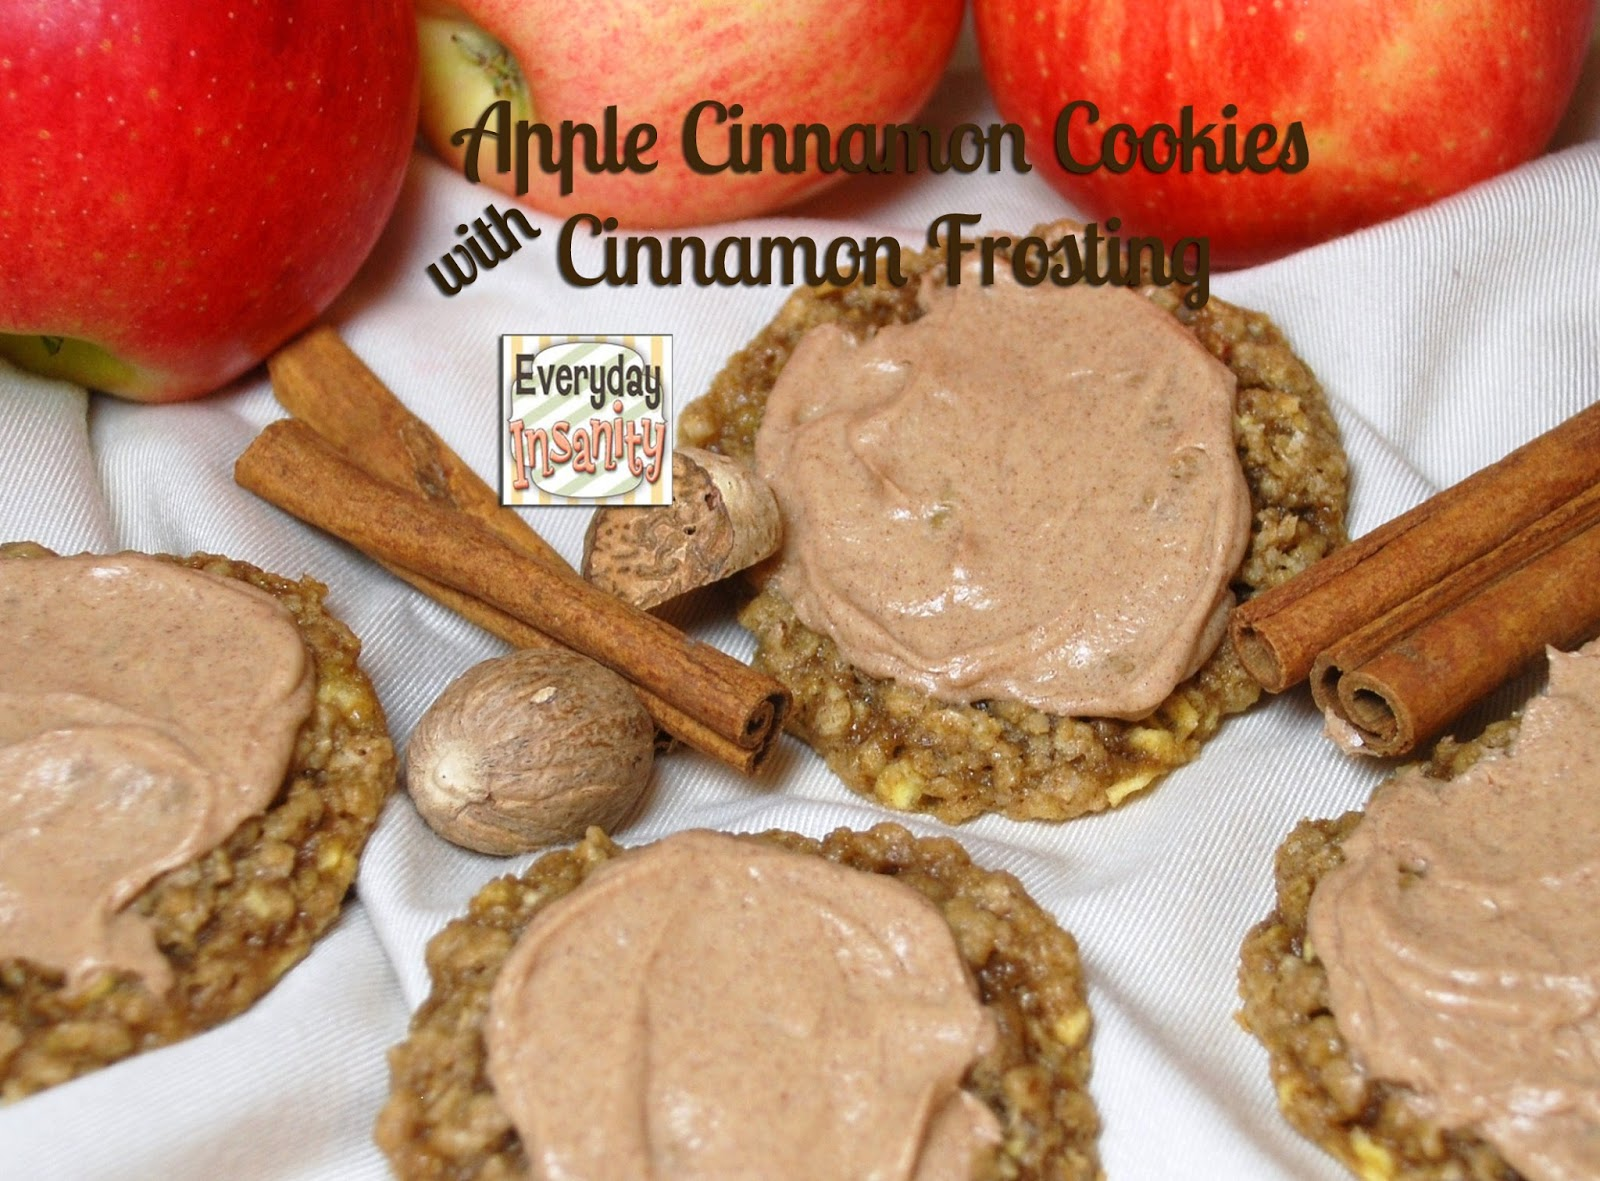 ... Insanity...: Apple Cinnamon & Oatmeal Cookie with Cinnamon Frosting